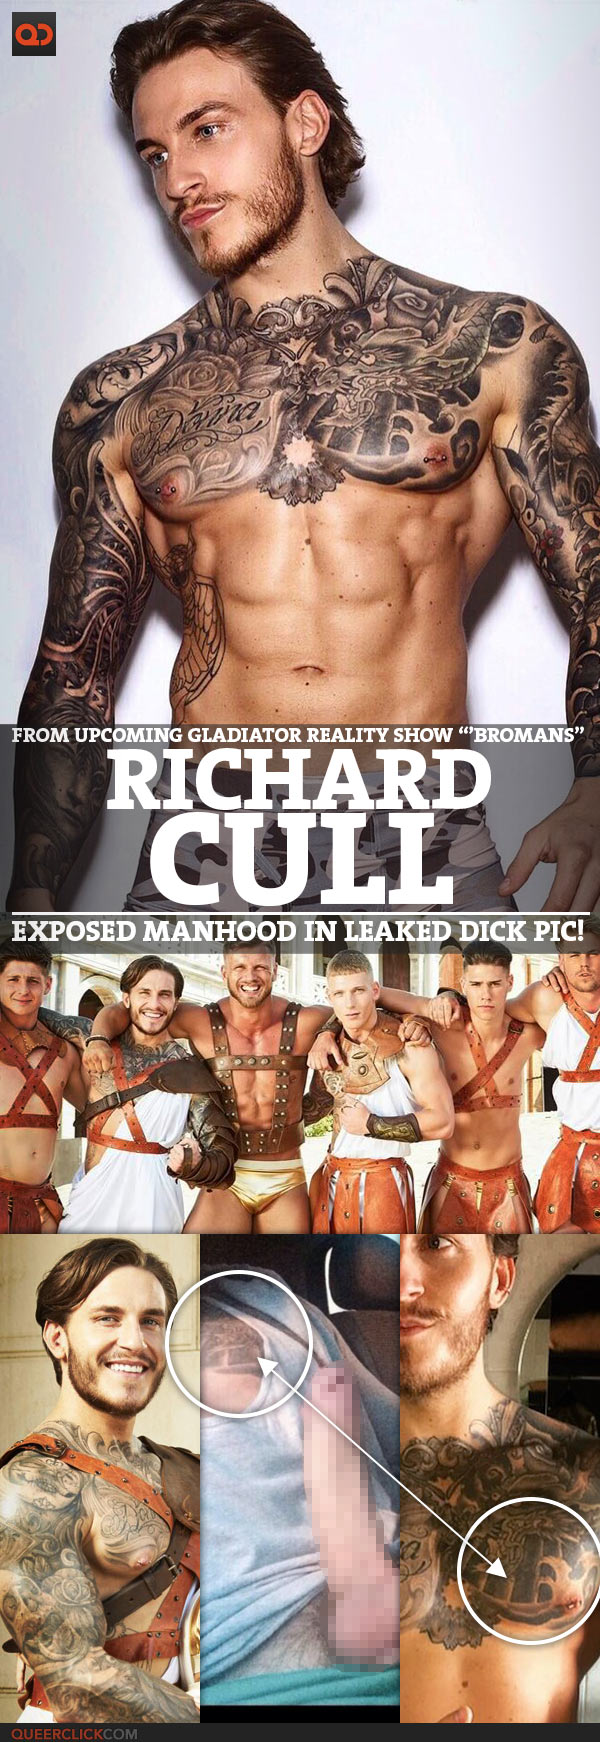 """Richard Cull, From Upcoming Gladiator Reality Show """"Bromans"""", Exposed Manhood In Leaked Dick Pic!"""